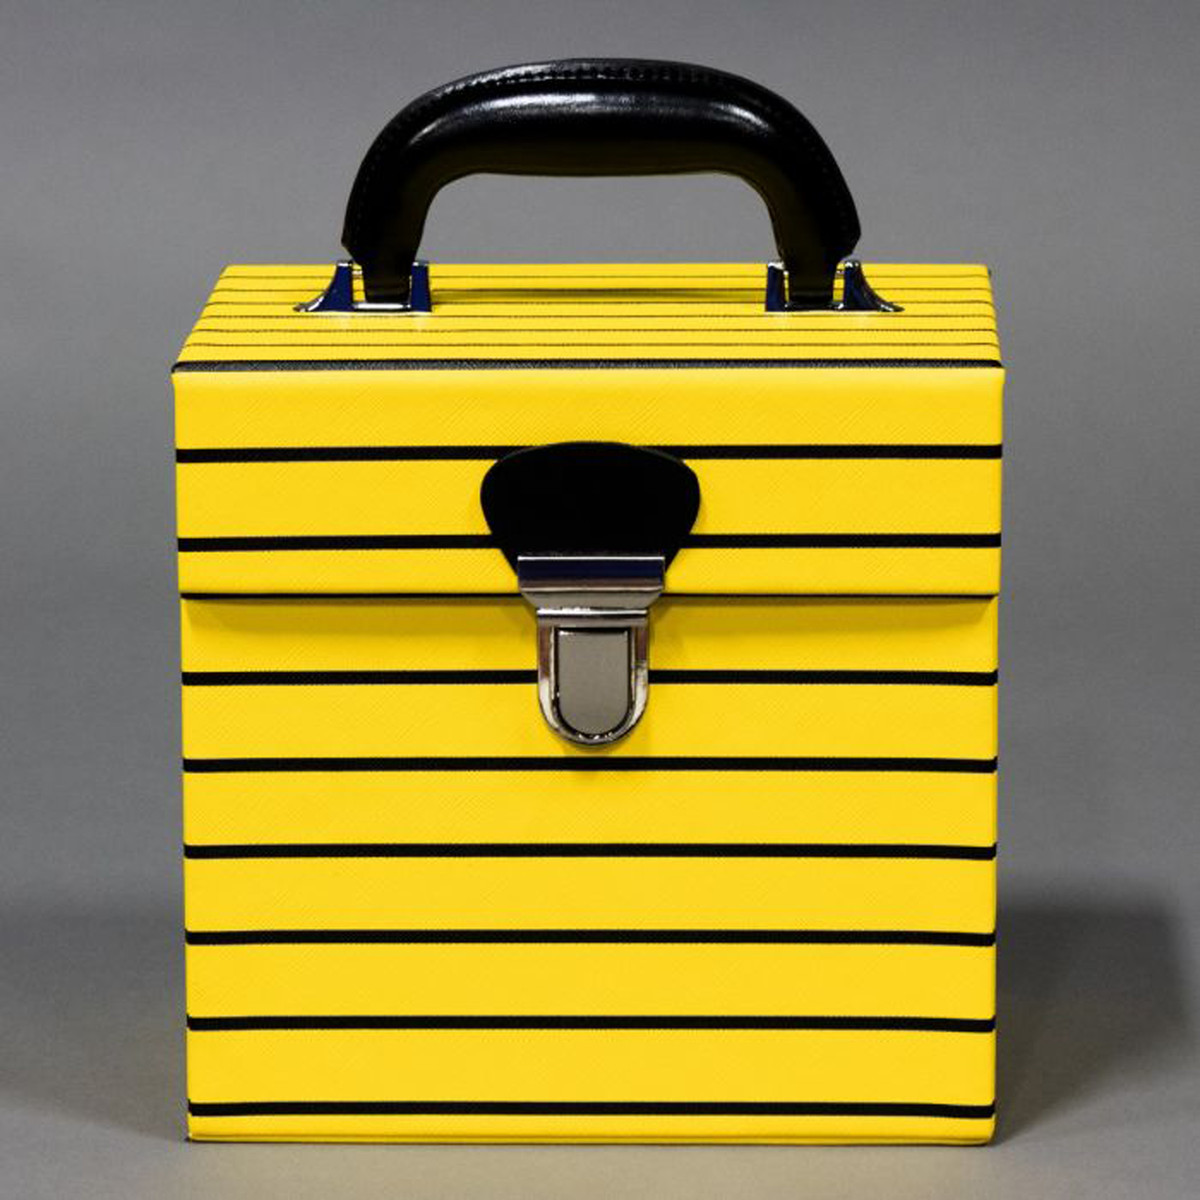 A yellow box with black stripes, a black handle, and a black lock mechanism.